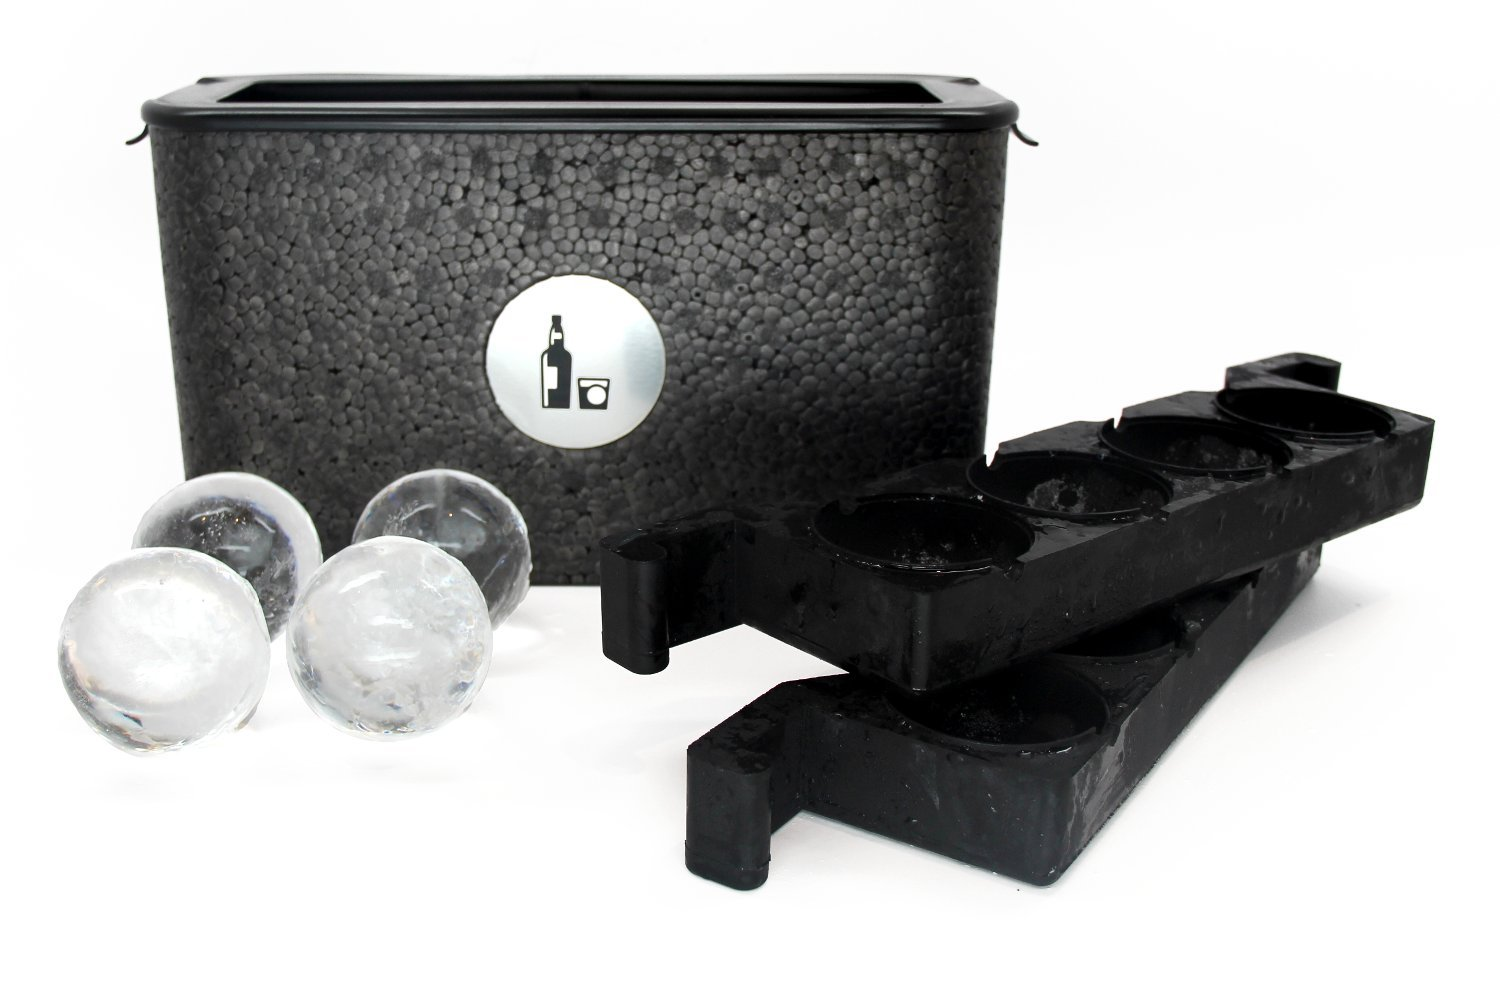 Wintersmiths Ice Chest - Crystal-Clear Ice Ball Maker